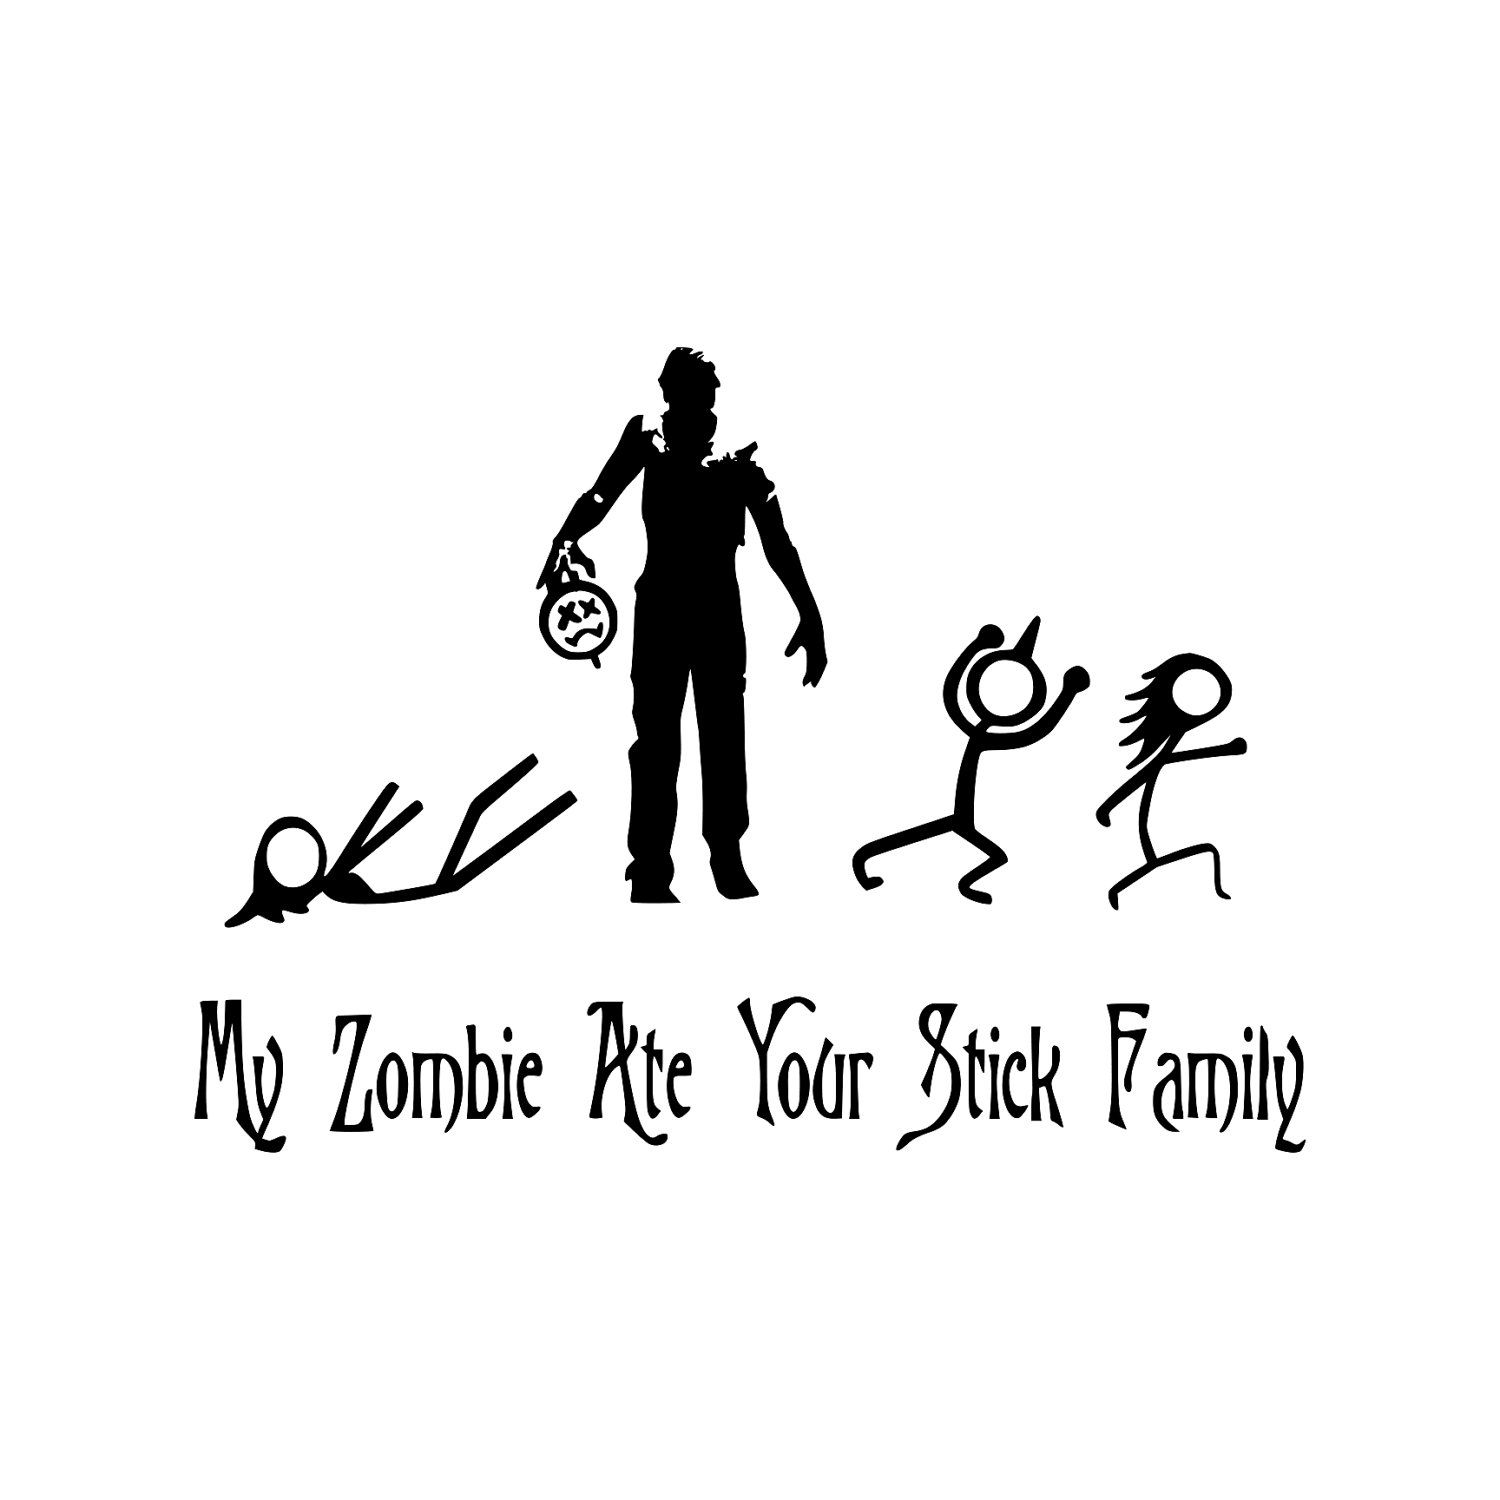 My Zombie Ate Your Stick Family Car Decal Stick Family Family Car Decals Family Car [ 1500 x 1500 Pixel ]